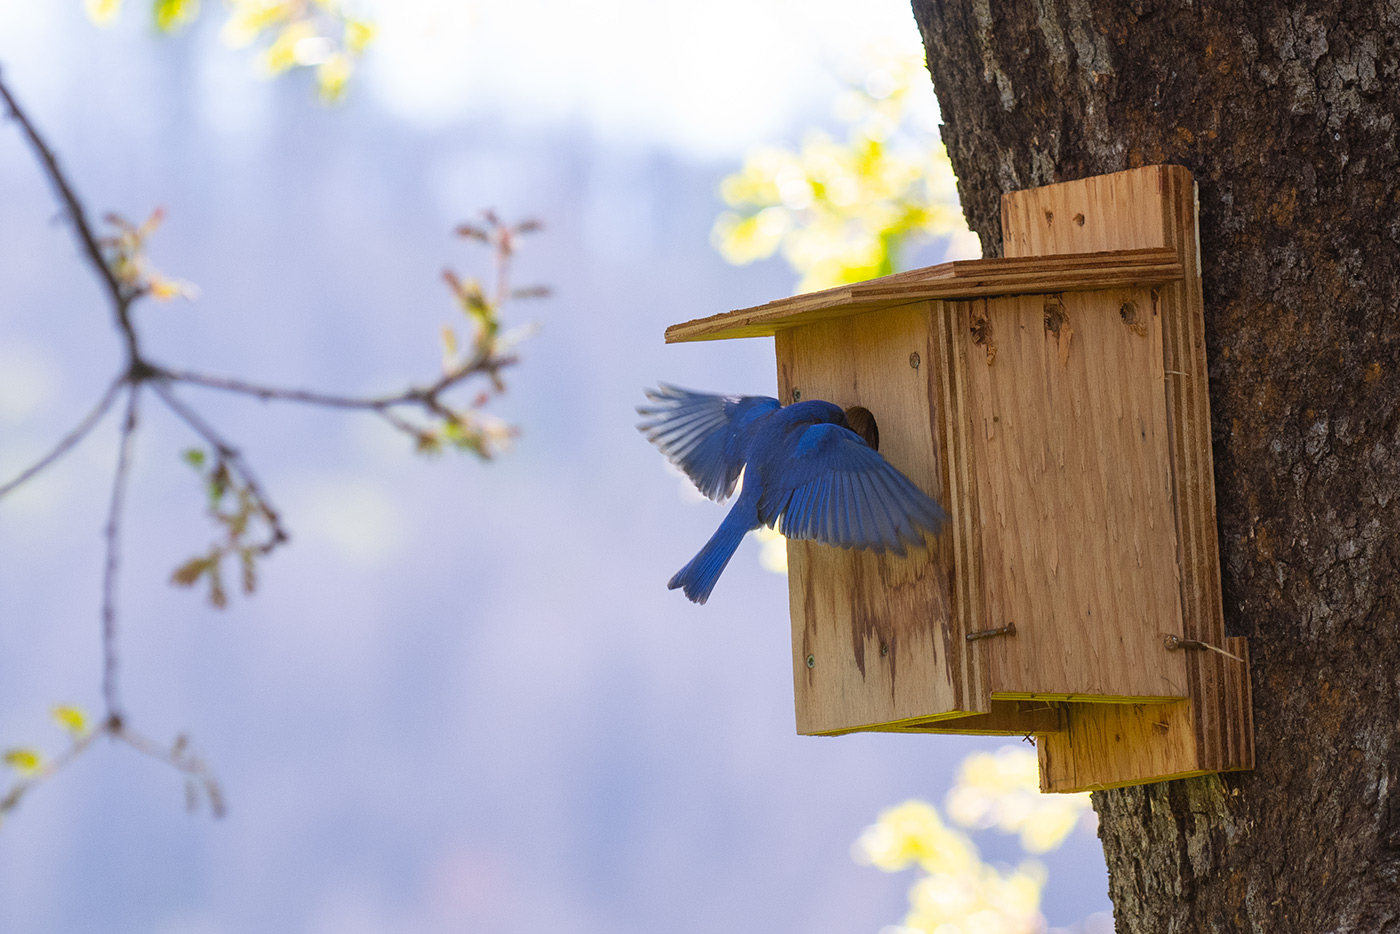 Bluebird entering its birdhouse